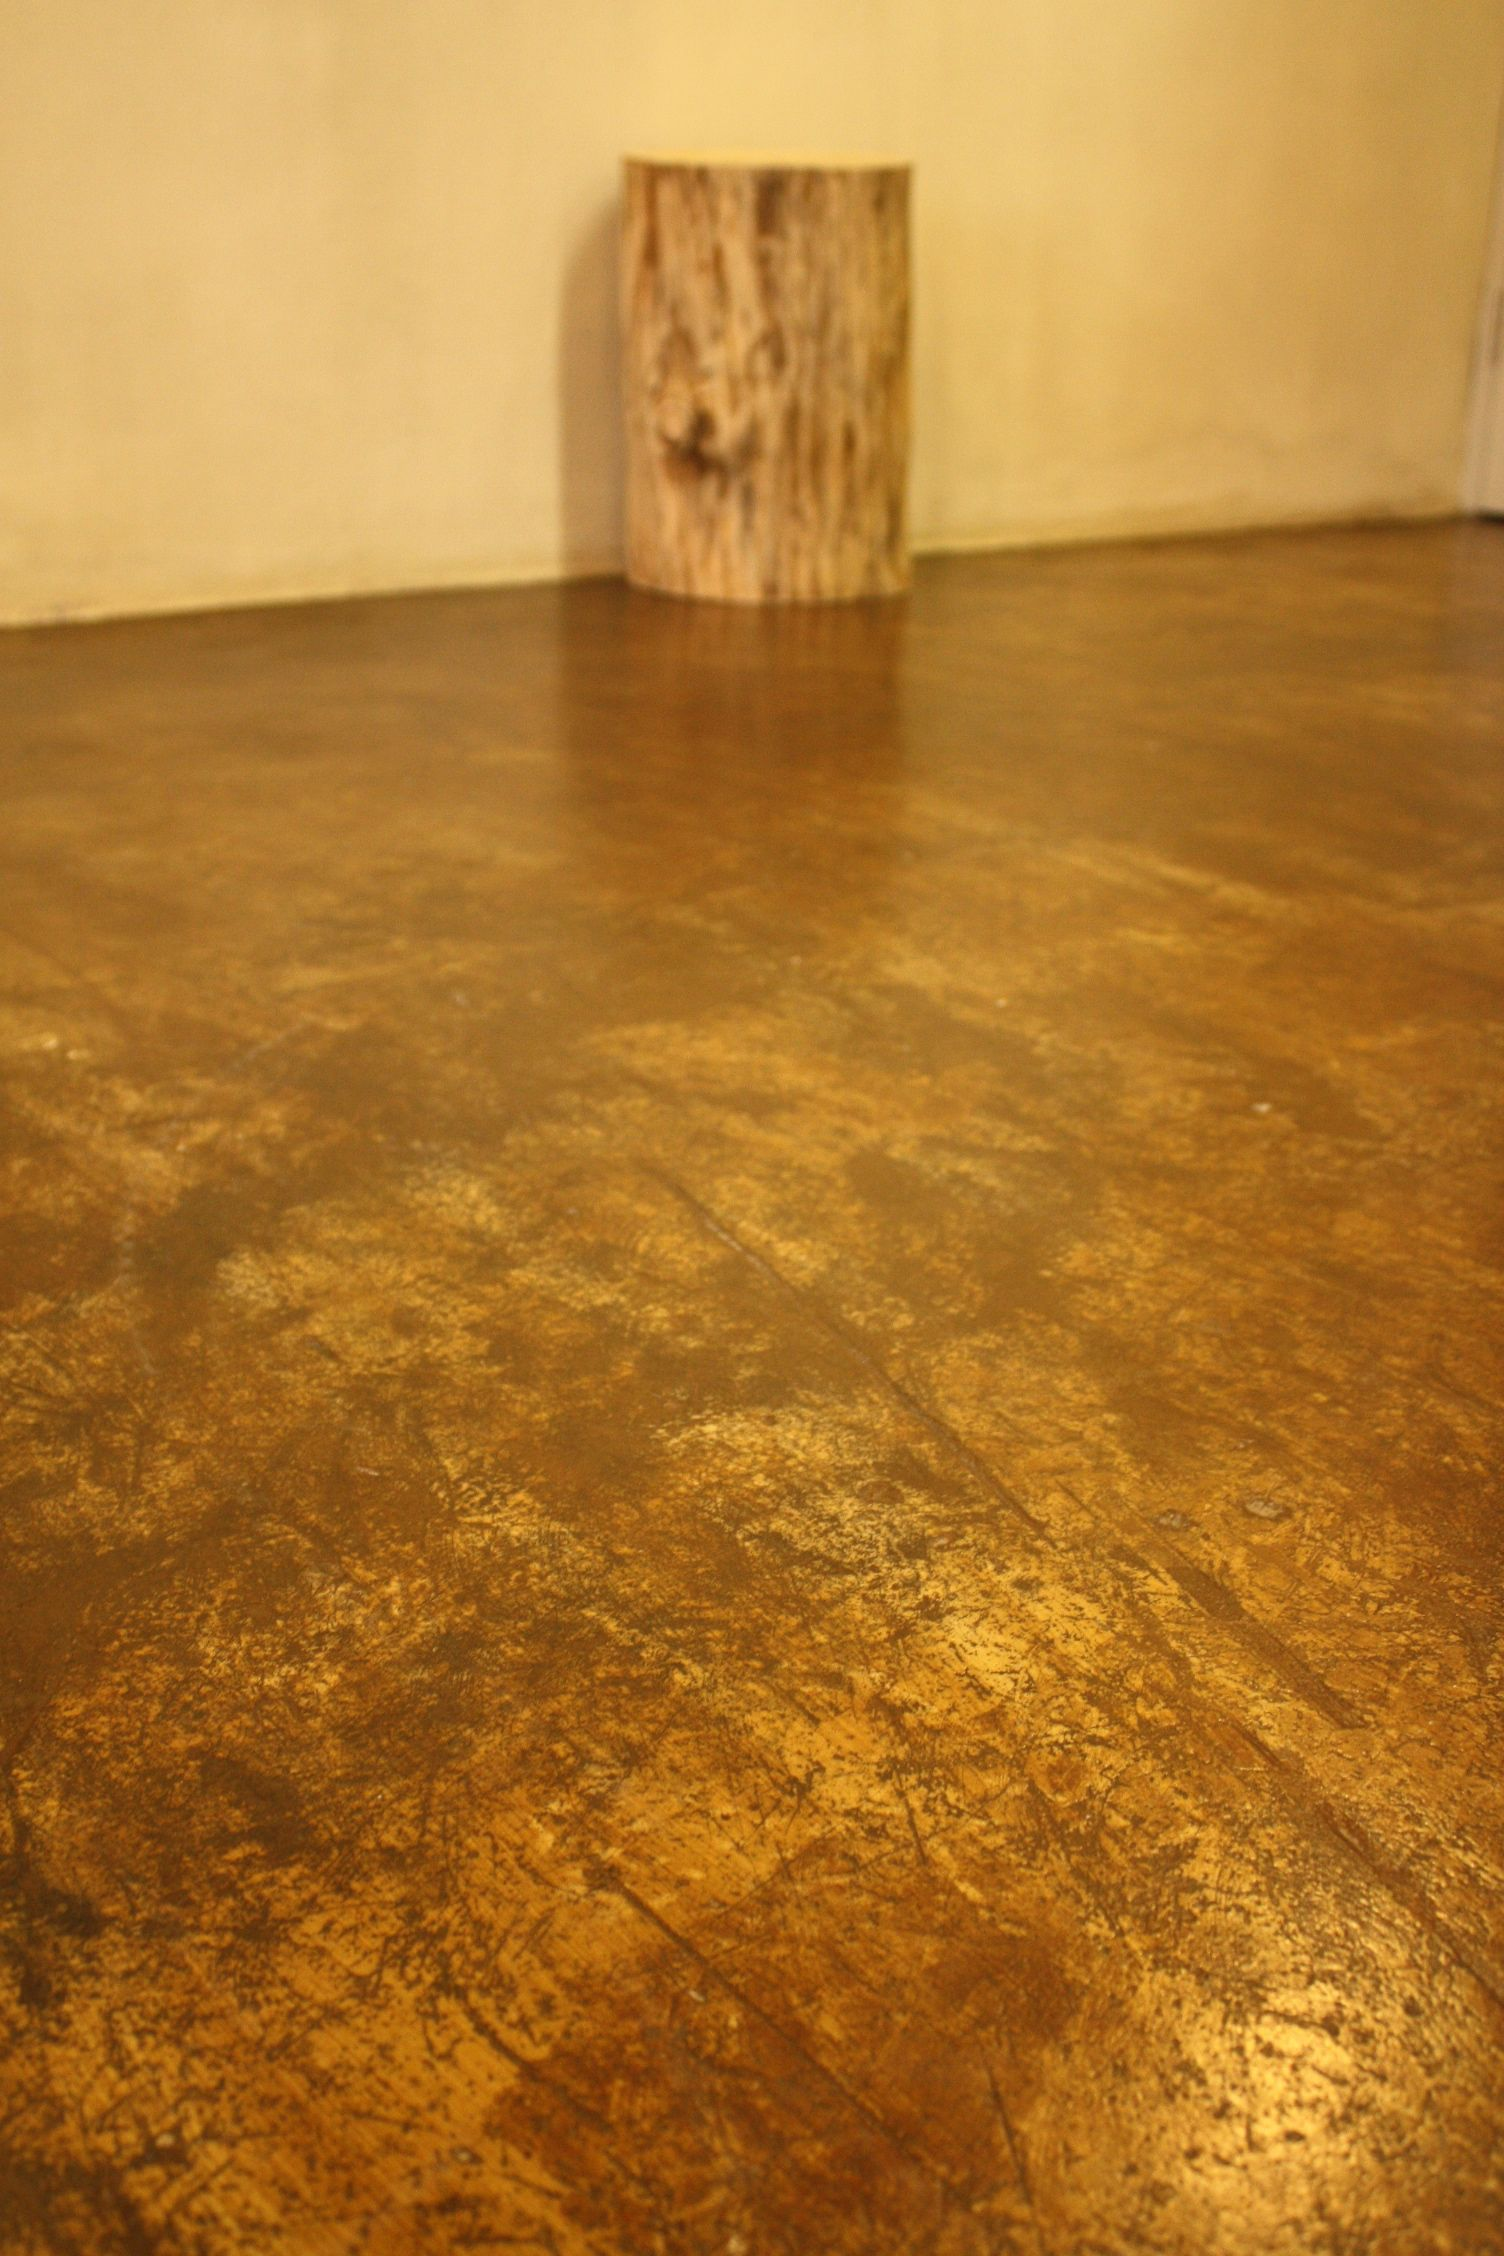 Floor finish at Spark Physiotherapy Studio, De Waterkant